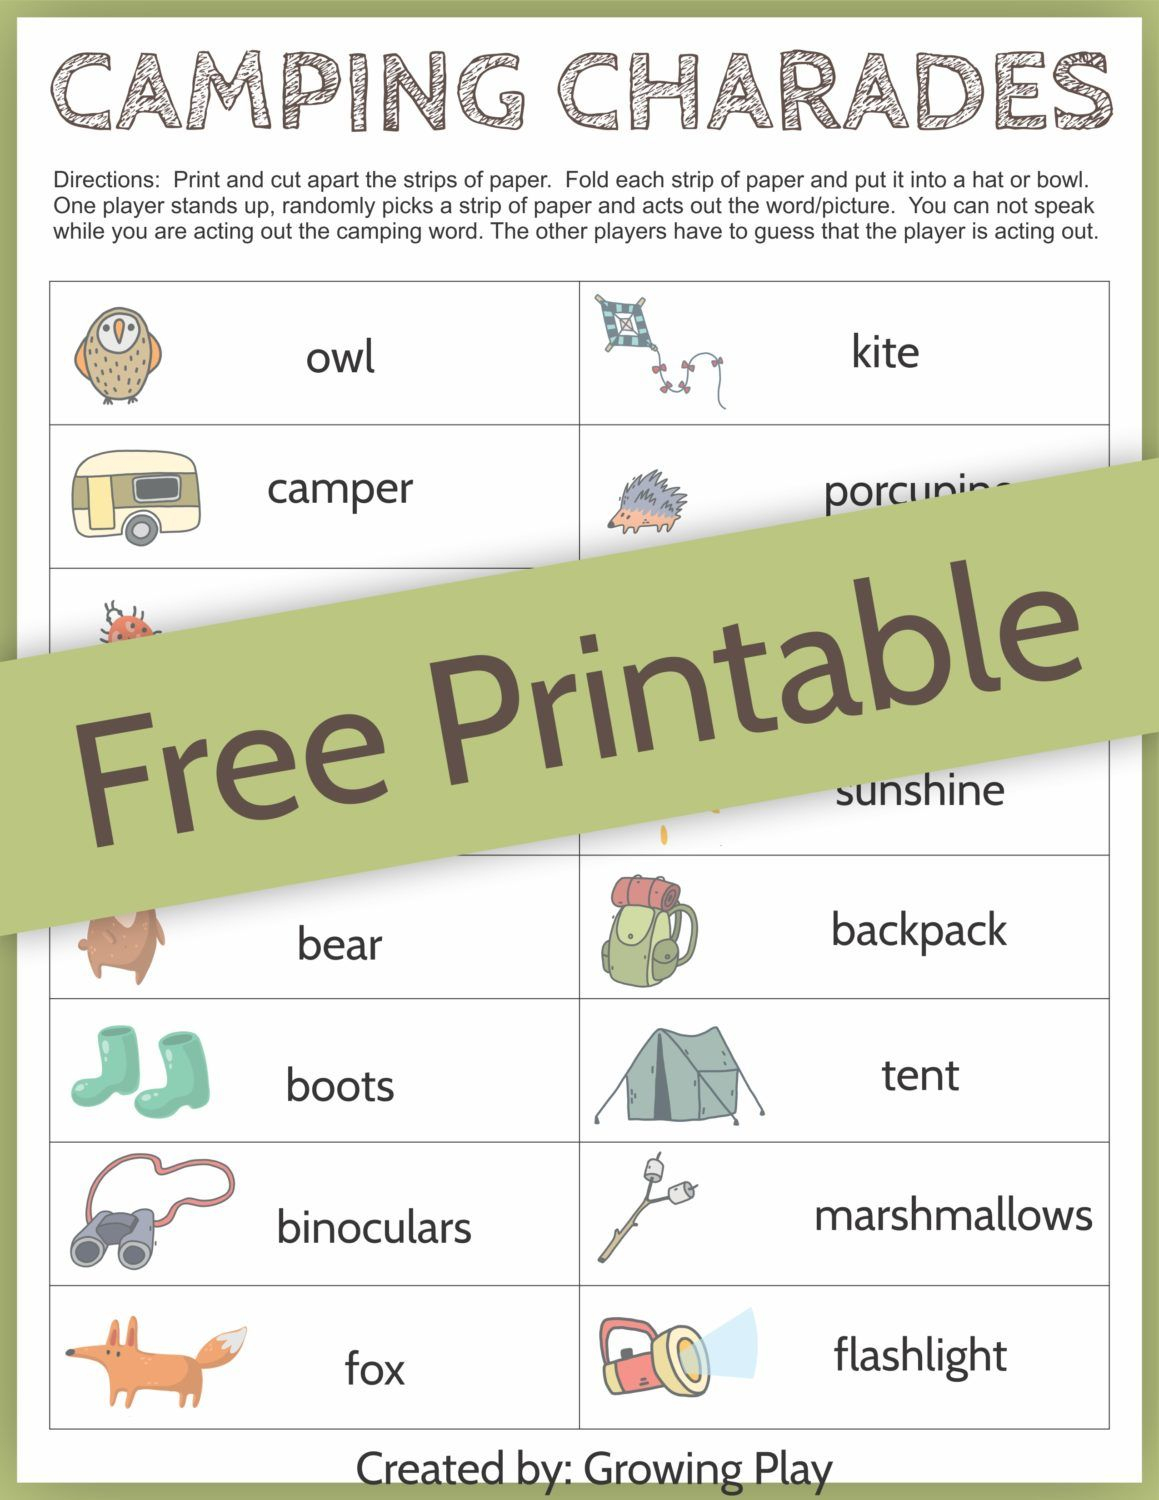 Camping Charades Game For Kids - Free Printable | Camping | Games - Free Printable Charades Cards